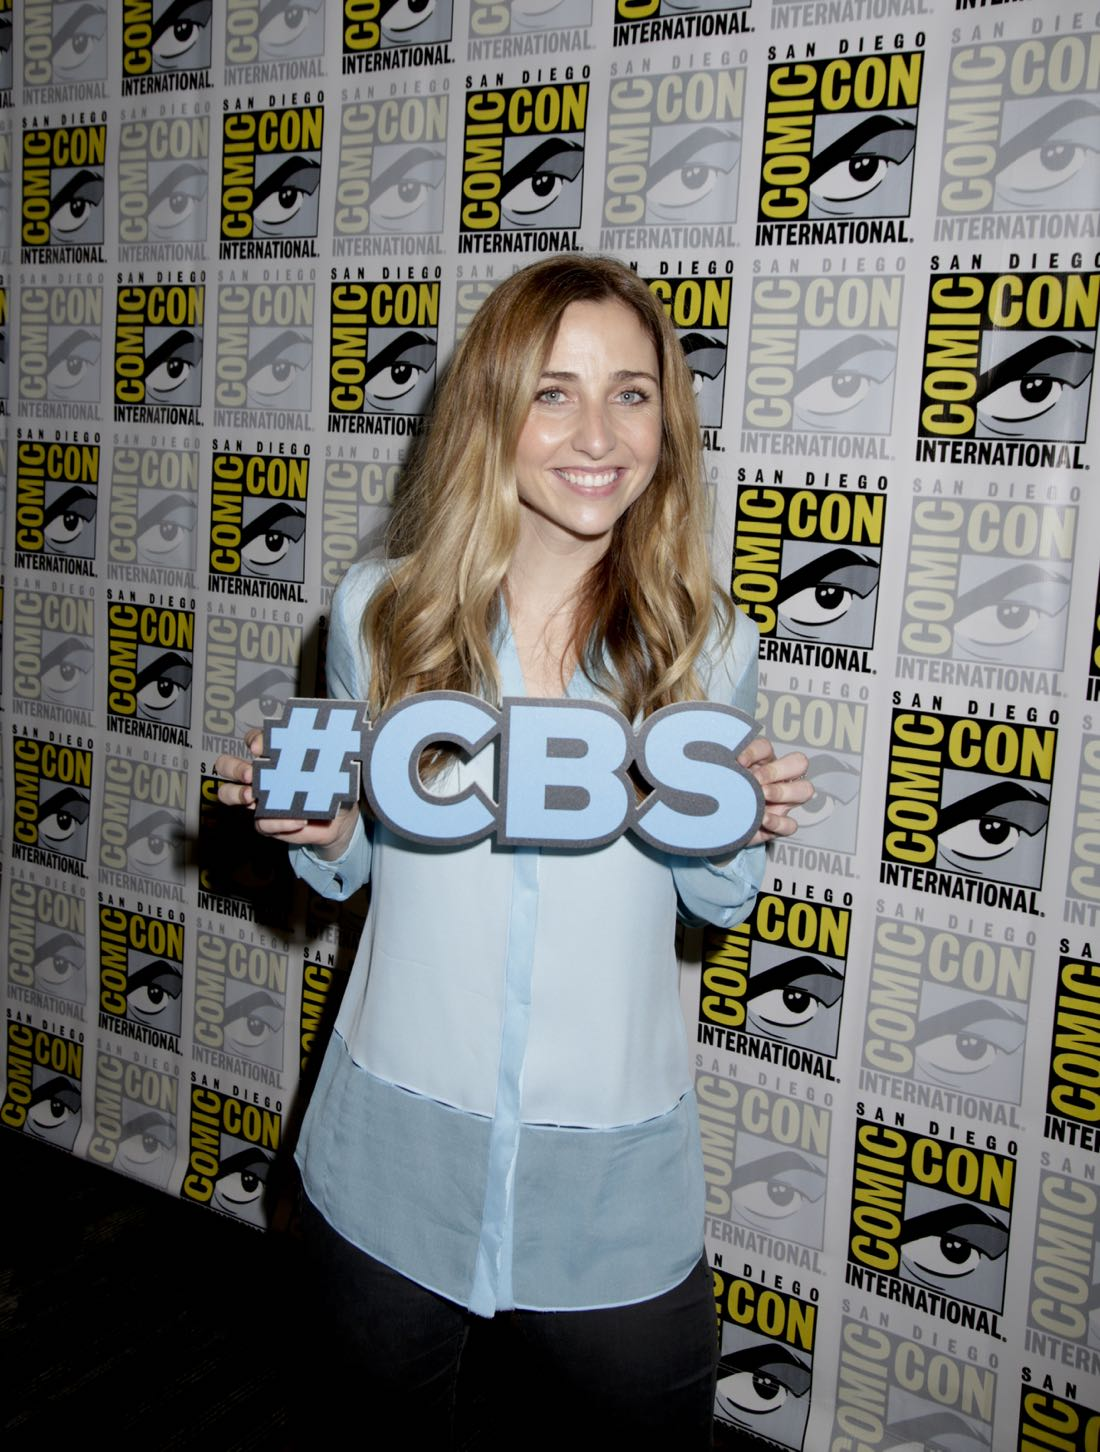 Executive Producer, Corinne Brinkerhoff of American Gothic at COMIC-CON® 2016 in San Diego, California. Photo: Francis Specker/CBS ©2016 CBS Broadcasting, Inc. All Rights Reserved